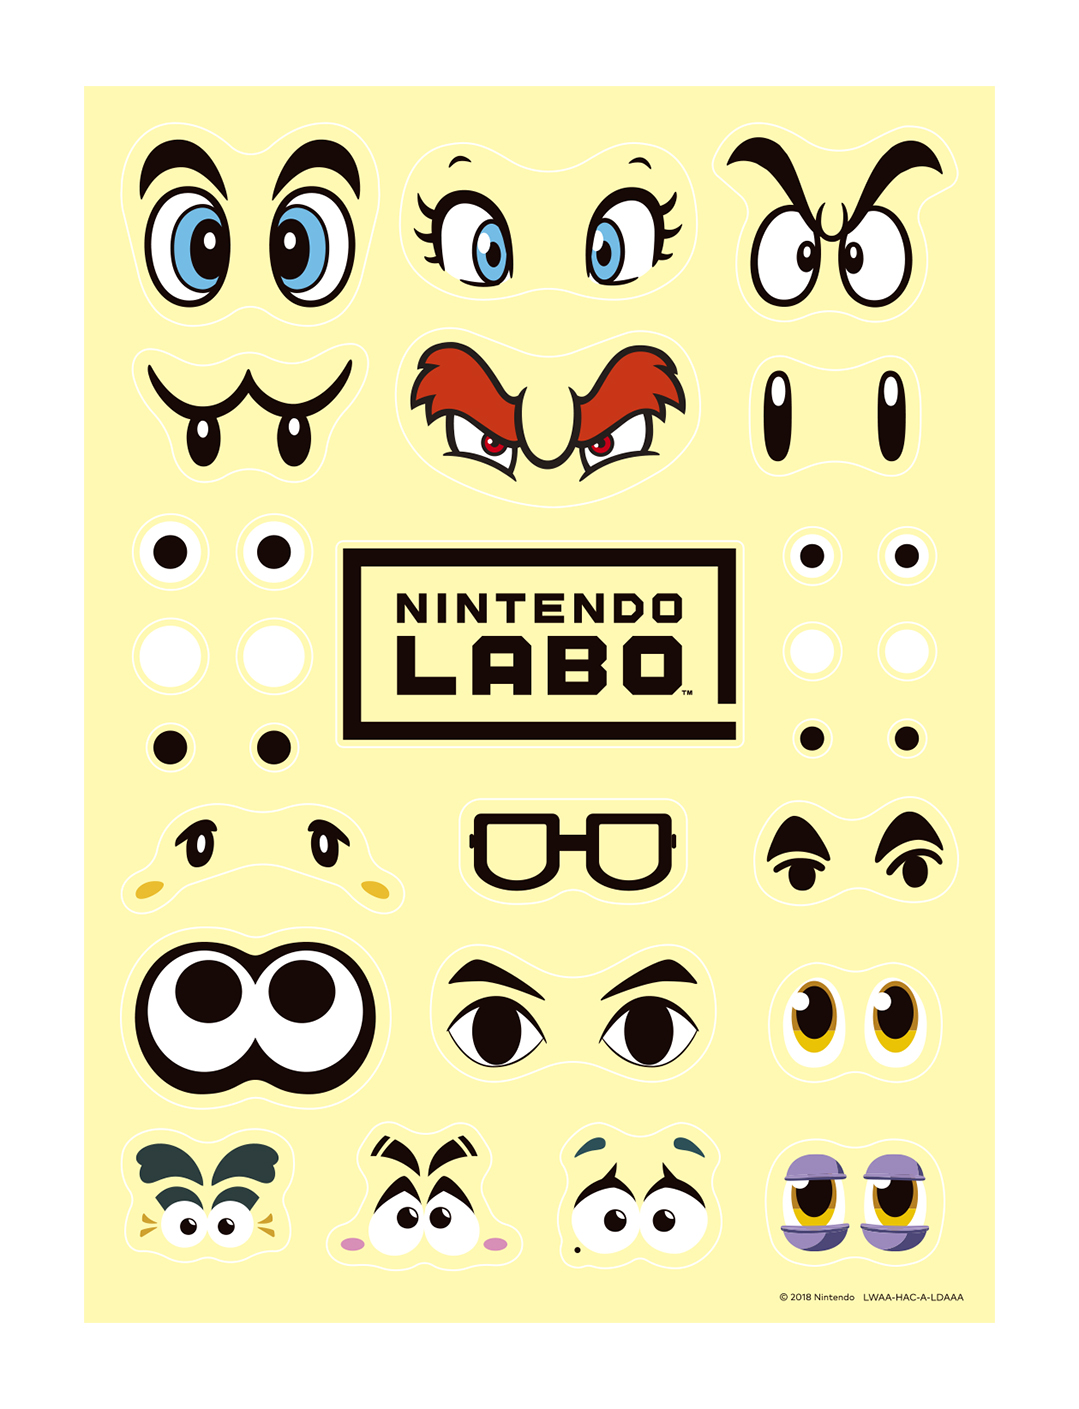 Switch labo customizationset 3